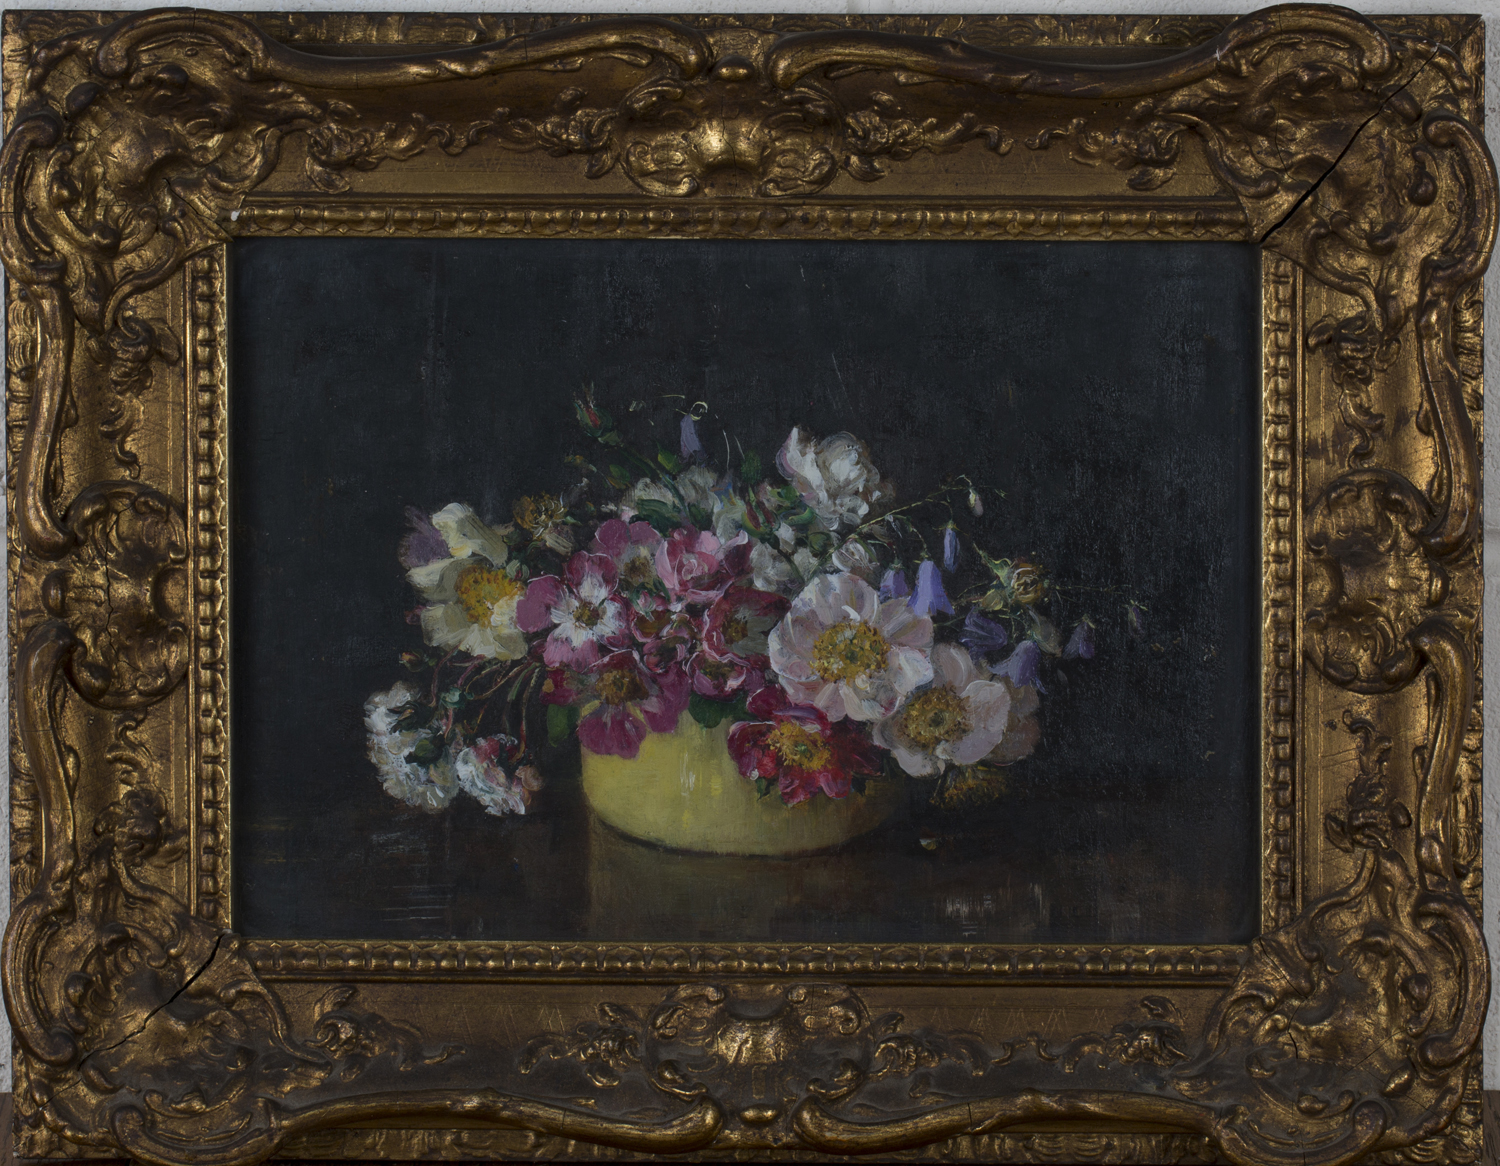 Emily Beatrice Bland - 'Single Roses in a Yellow Bowl', early 20th century oil on board, artist's - Image 2 of 5